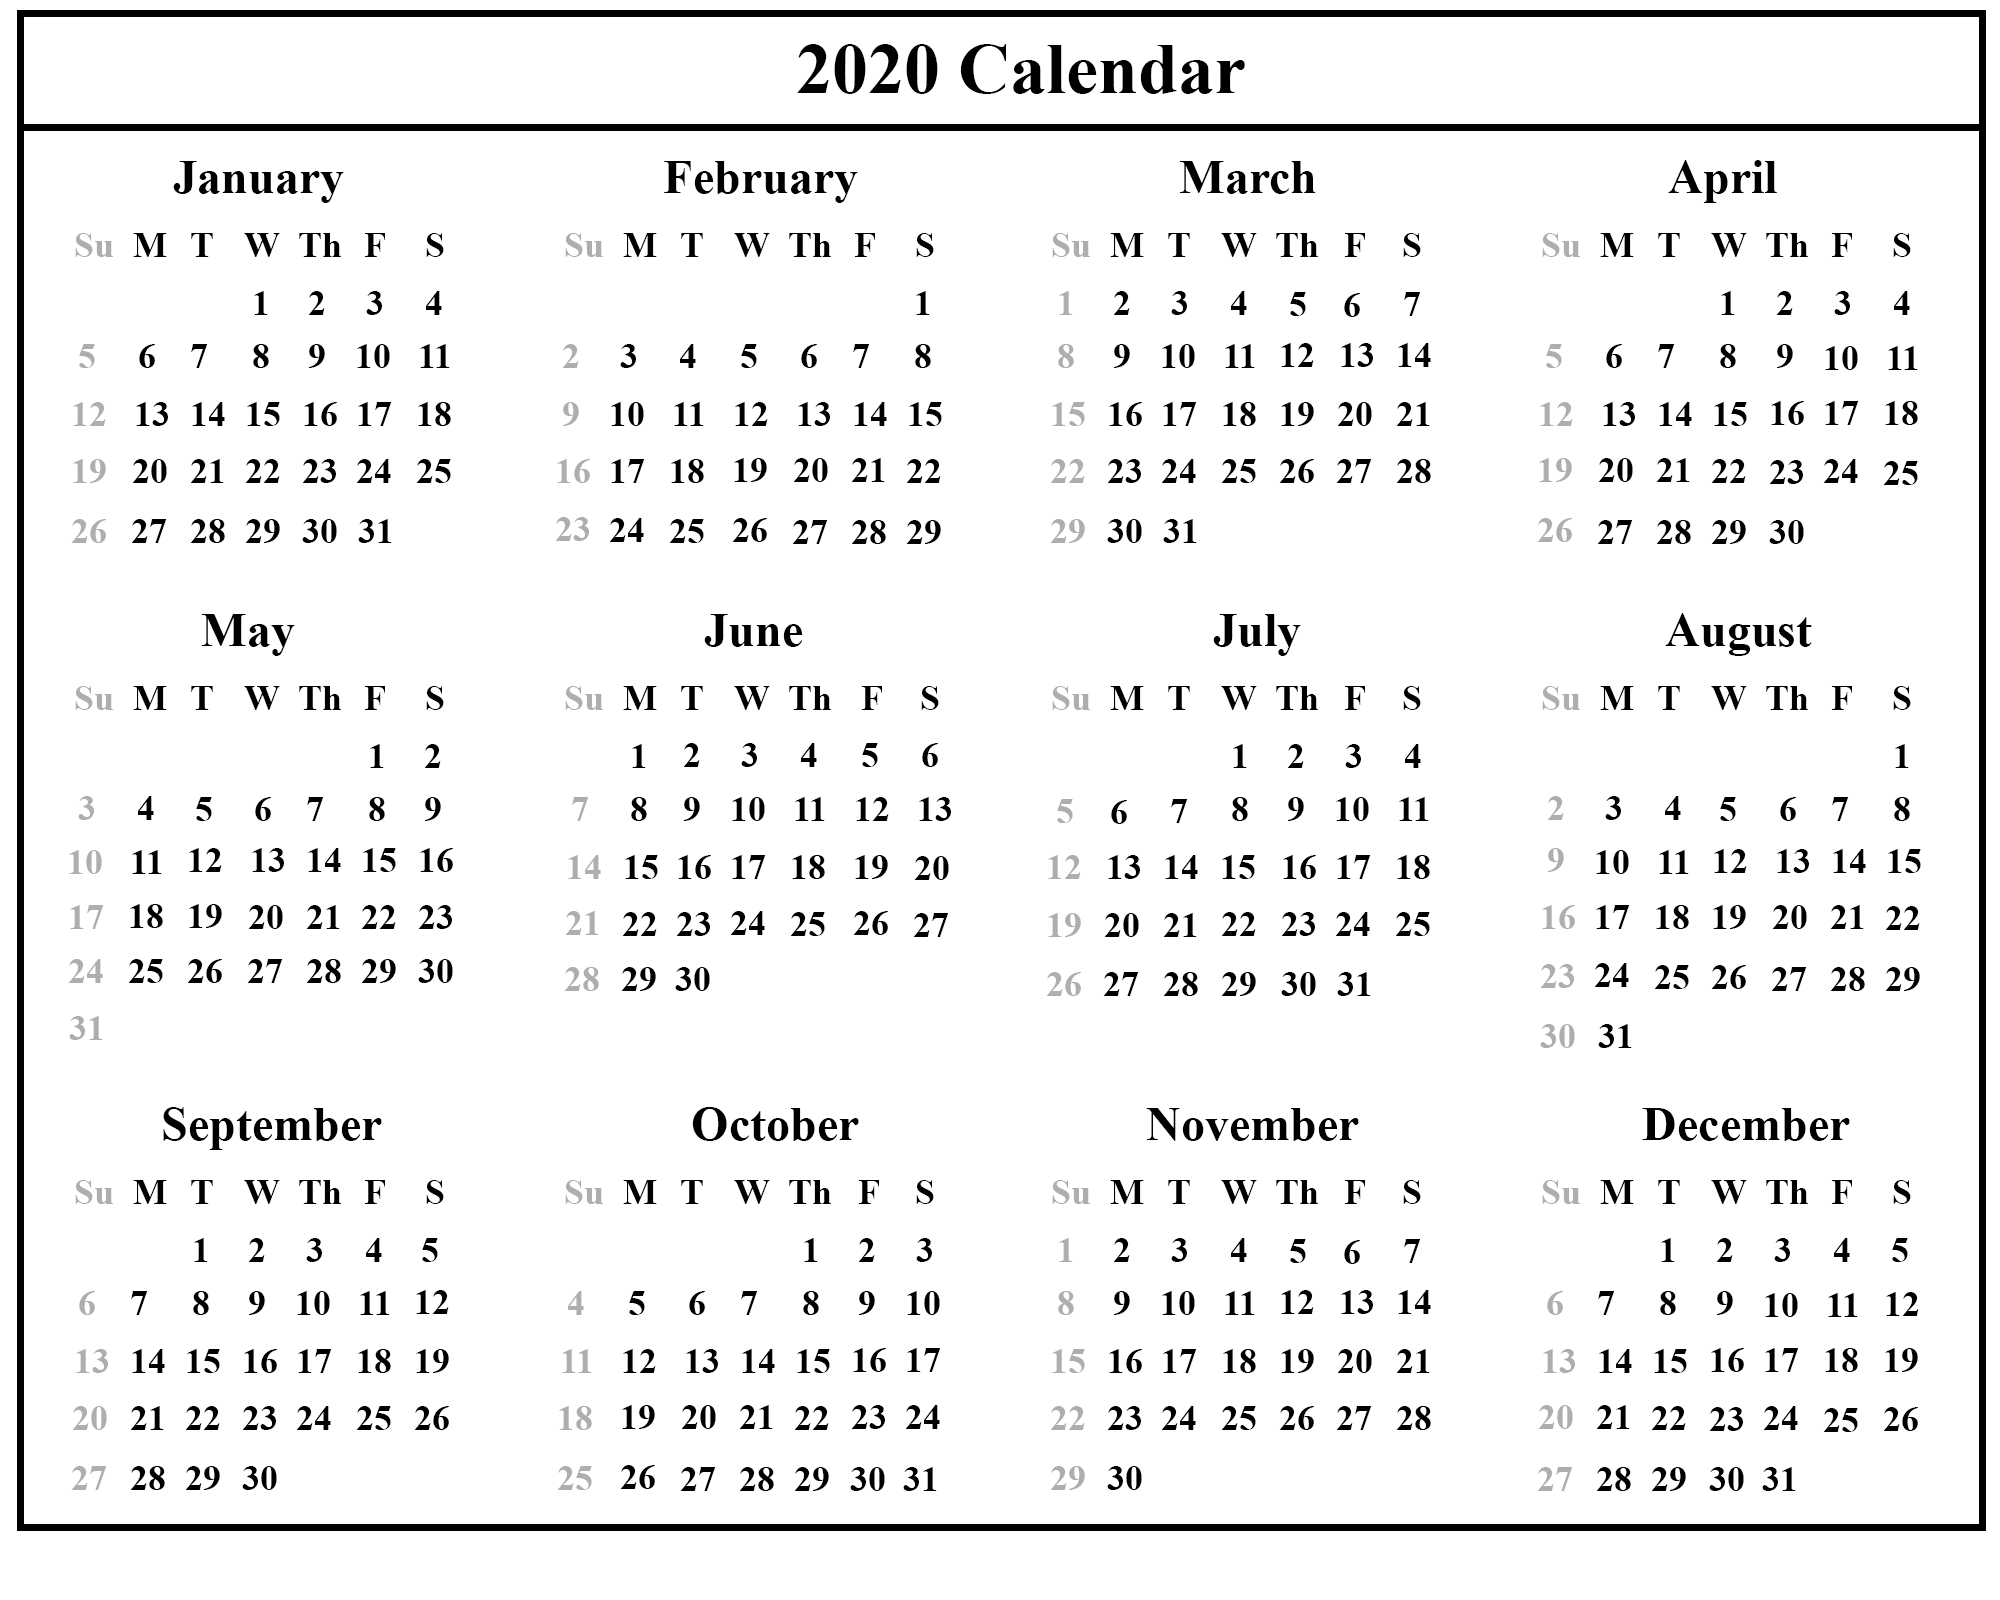 Editable 2020 Calendar Printable Template Blank With Notes  2020 Calendar Printable Full Page